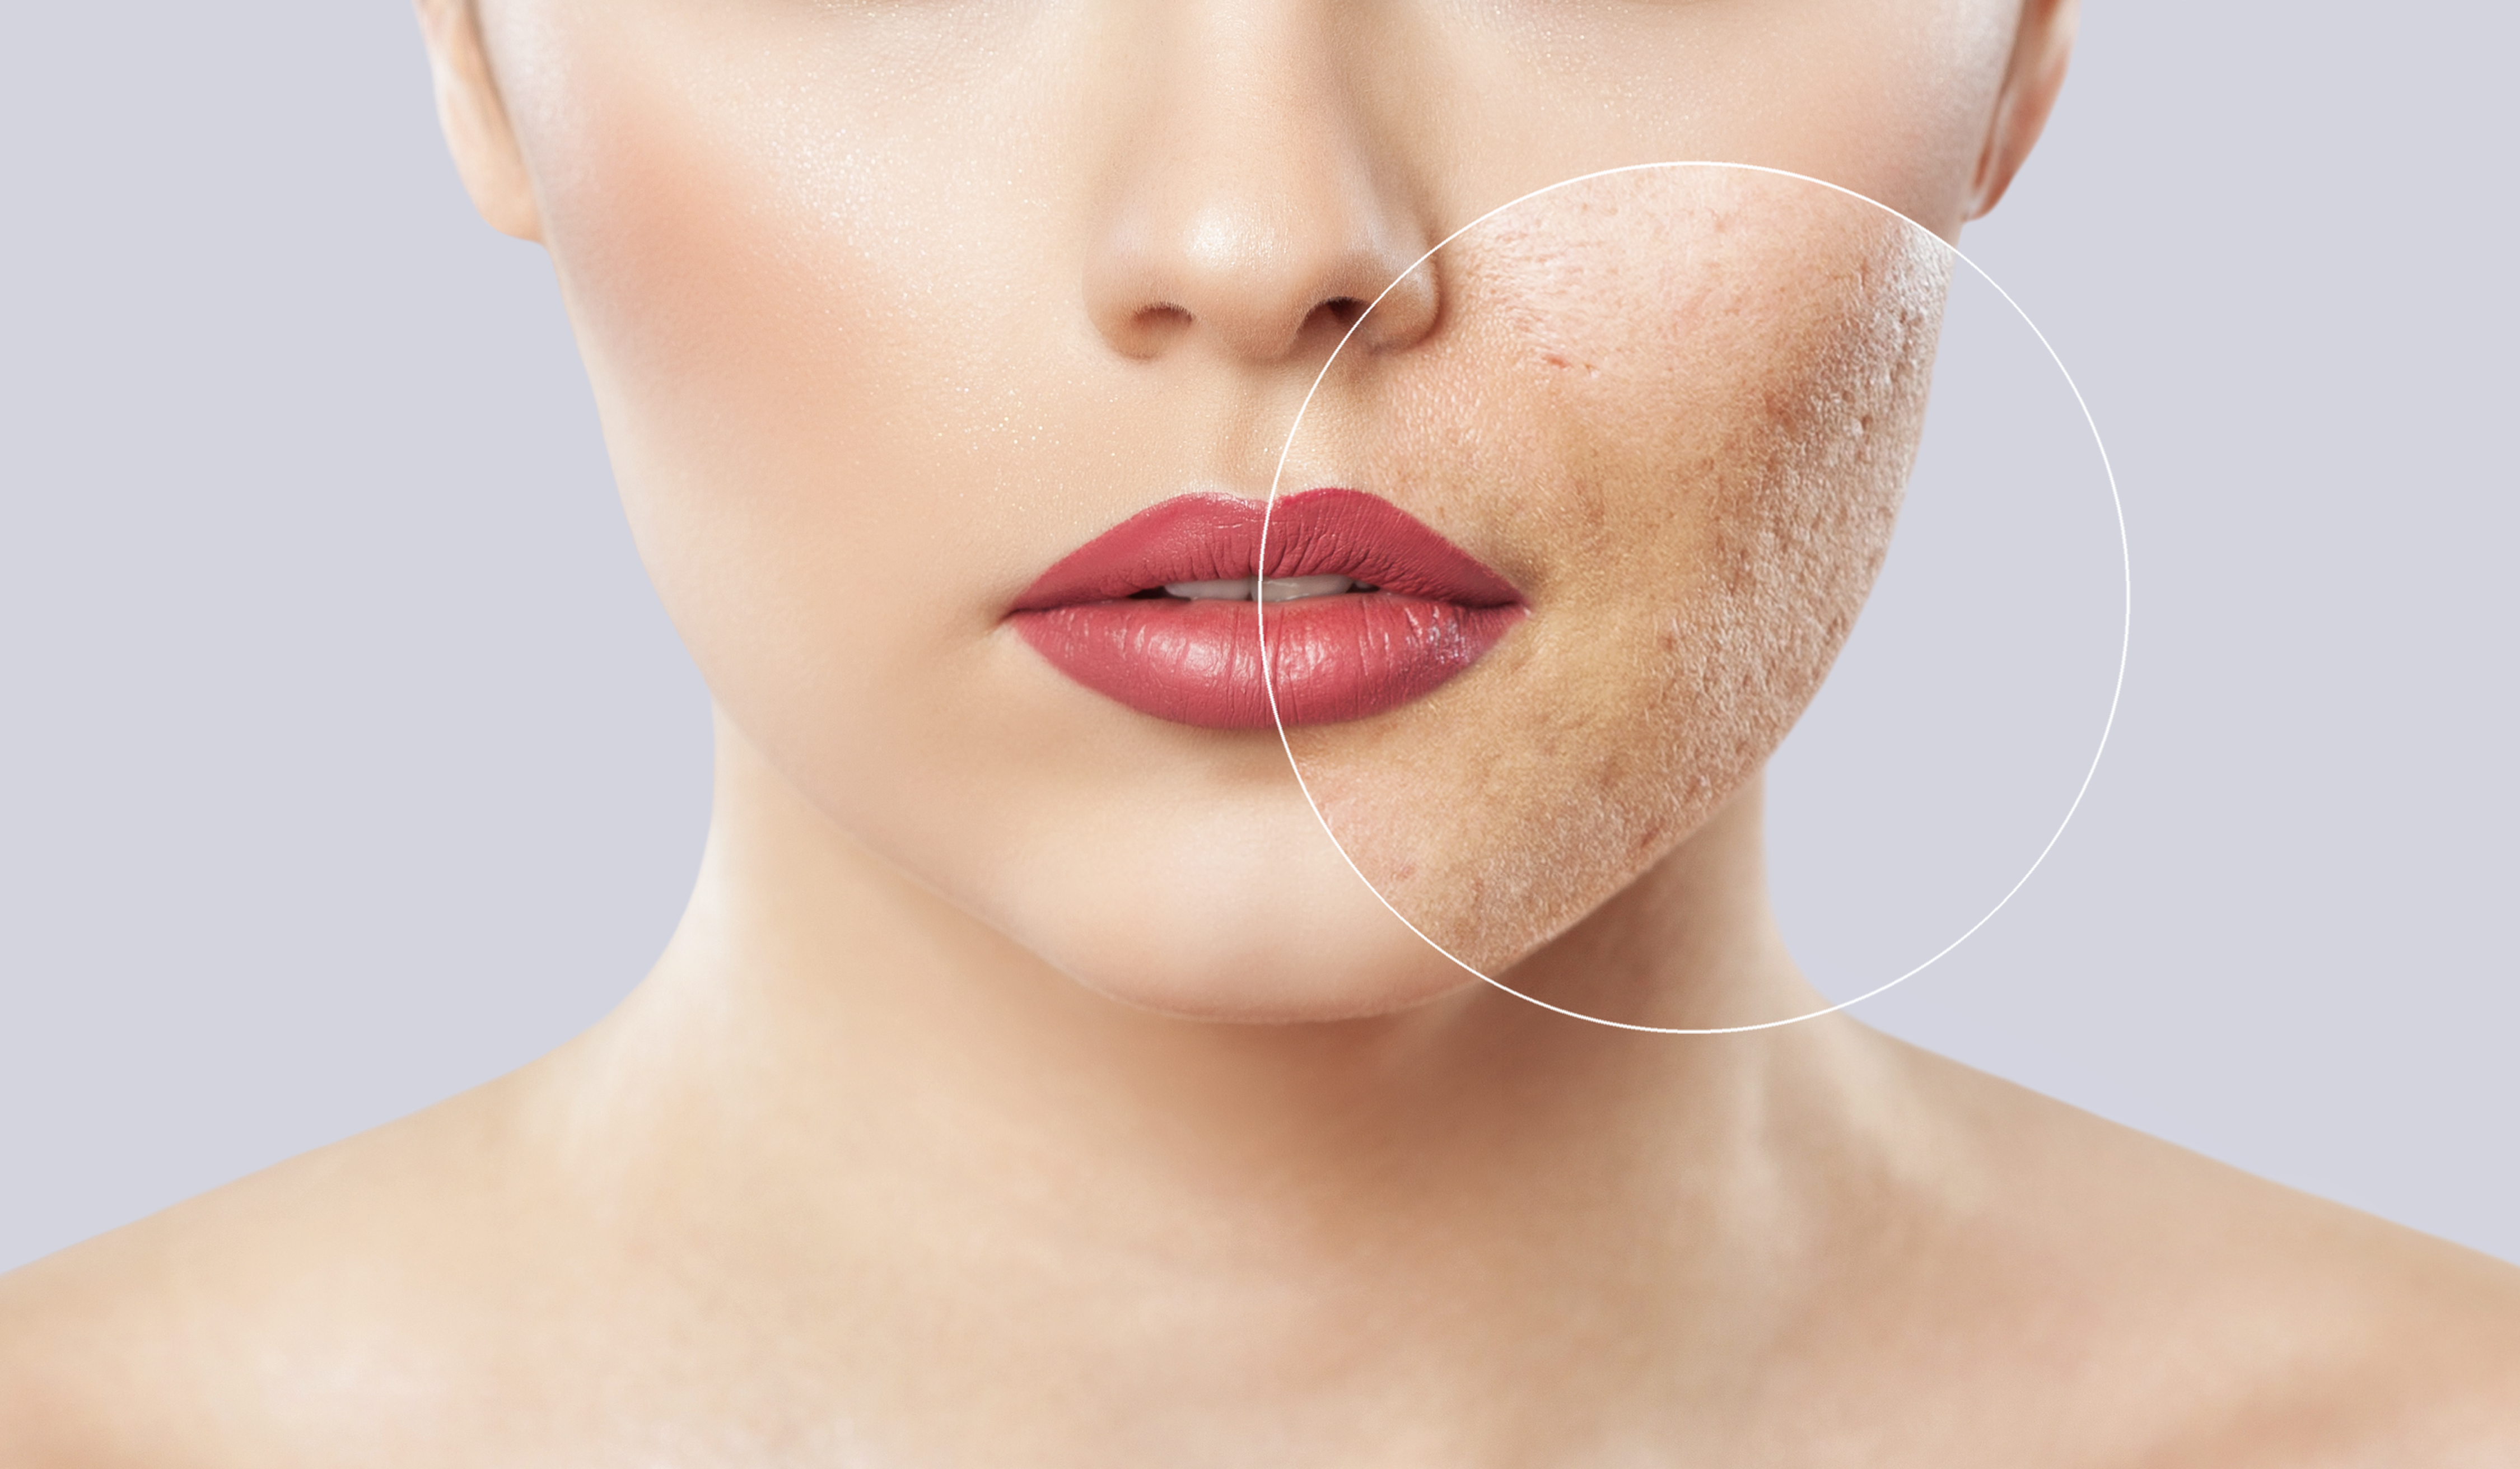 Lose Your Acne Scars For Good With Our Skin Treatments